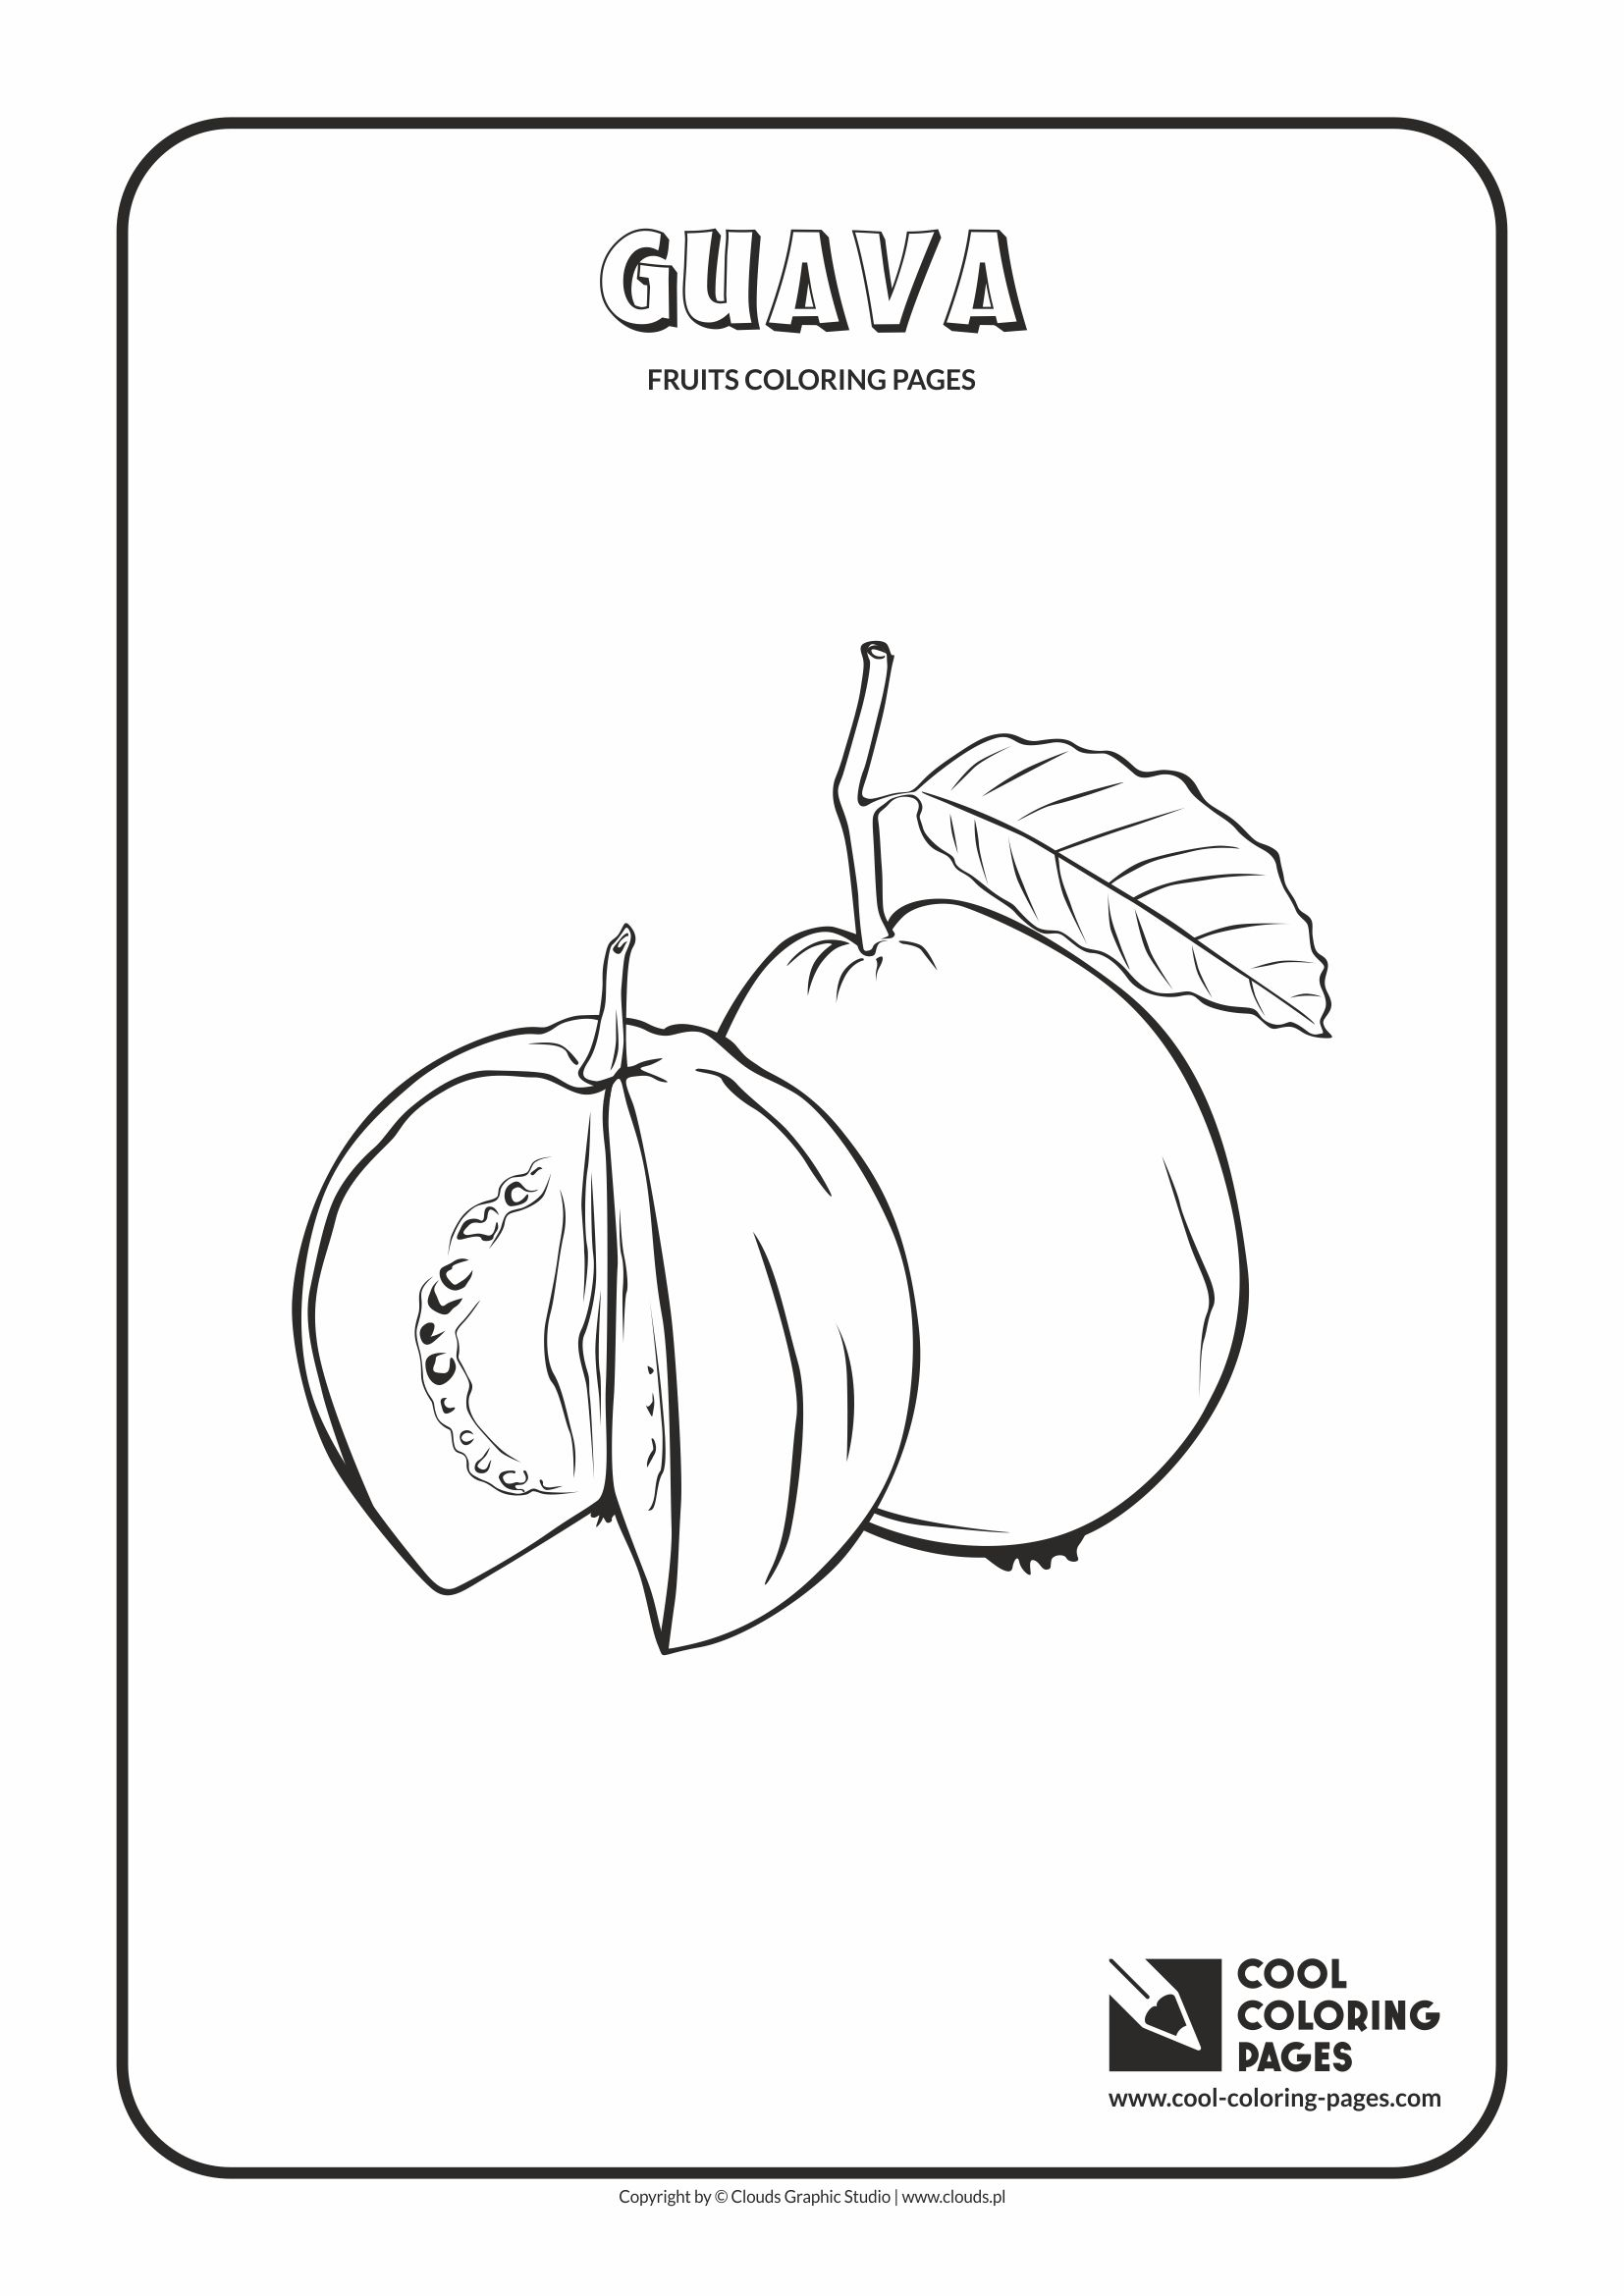 Cool Coloring Pages - Plants / Guava / Coloring page with guava